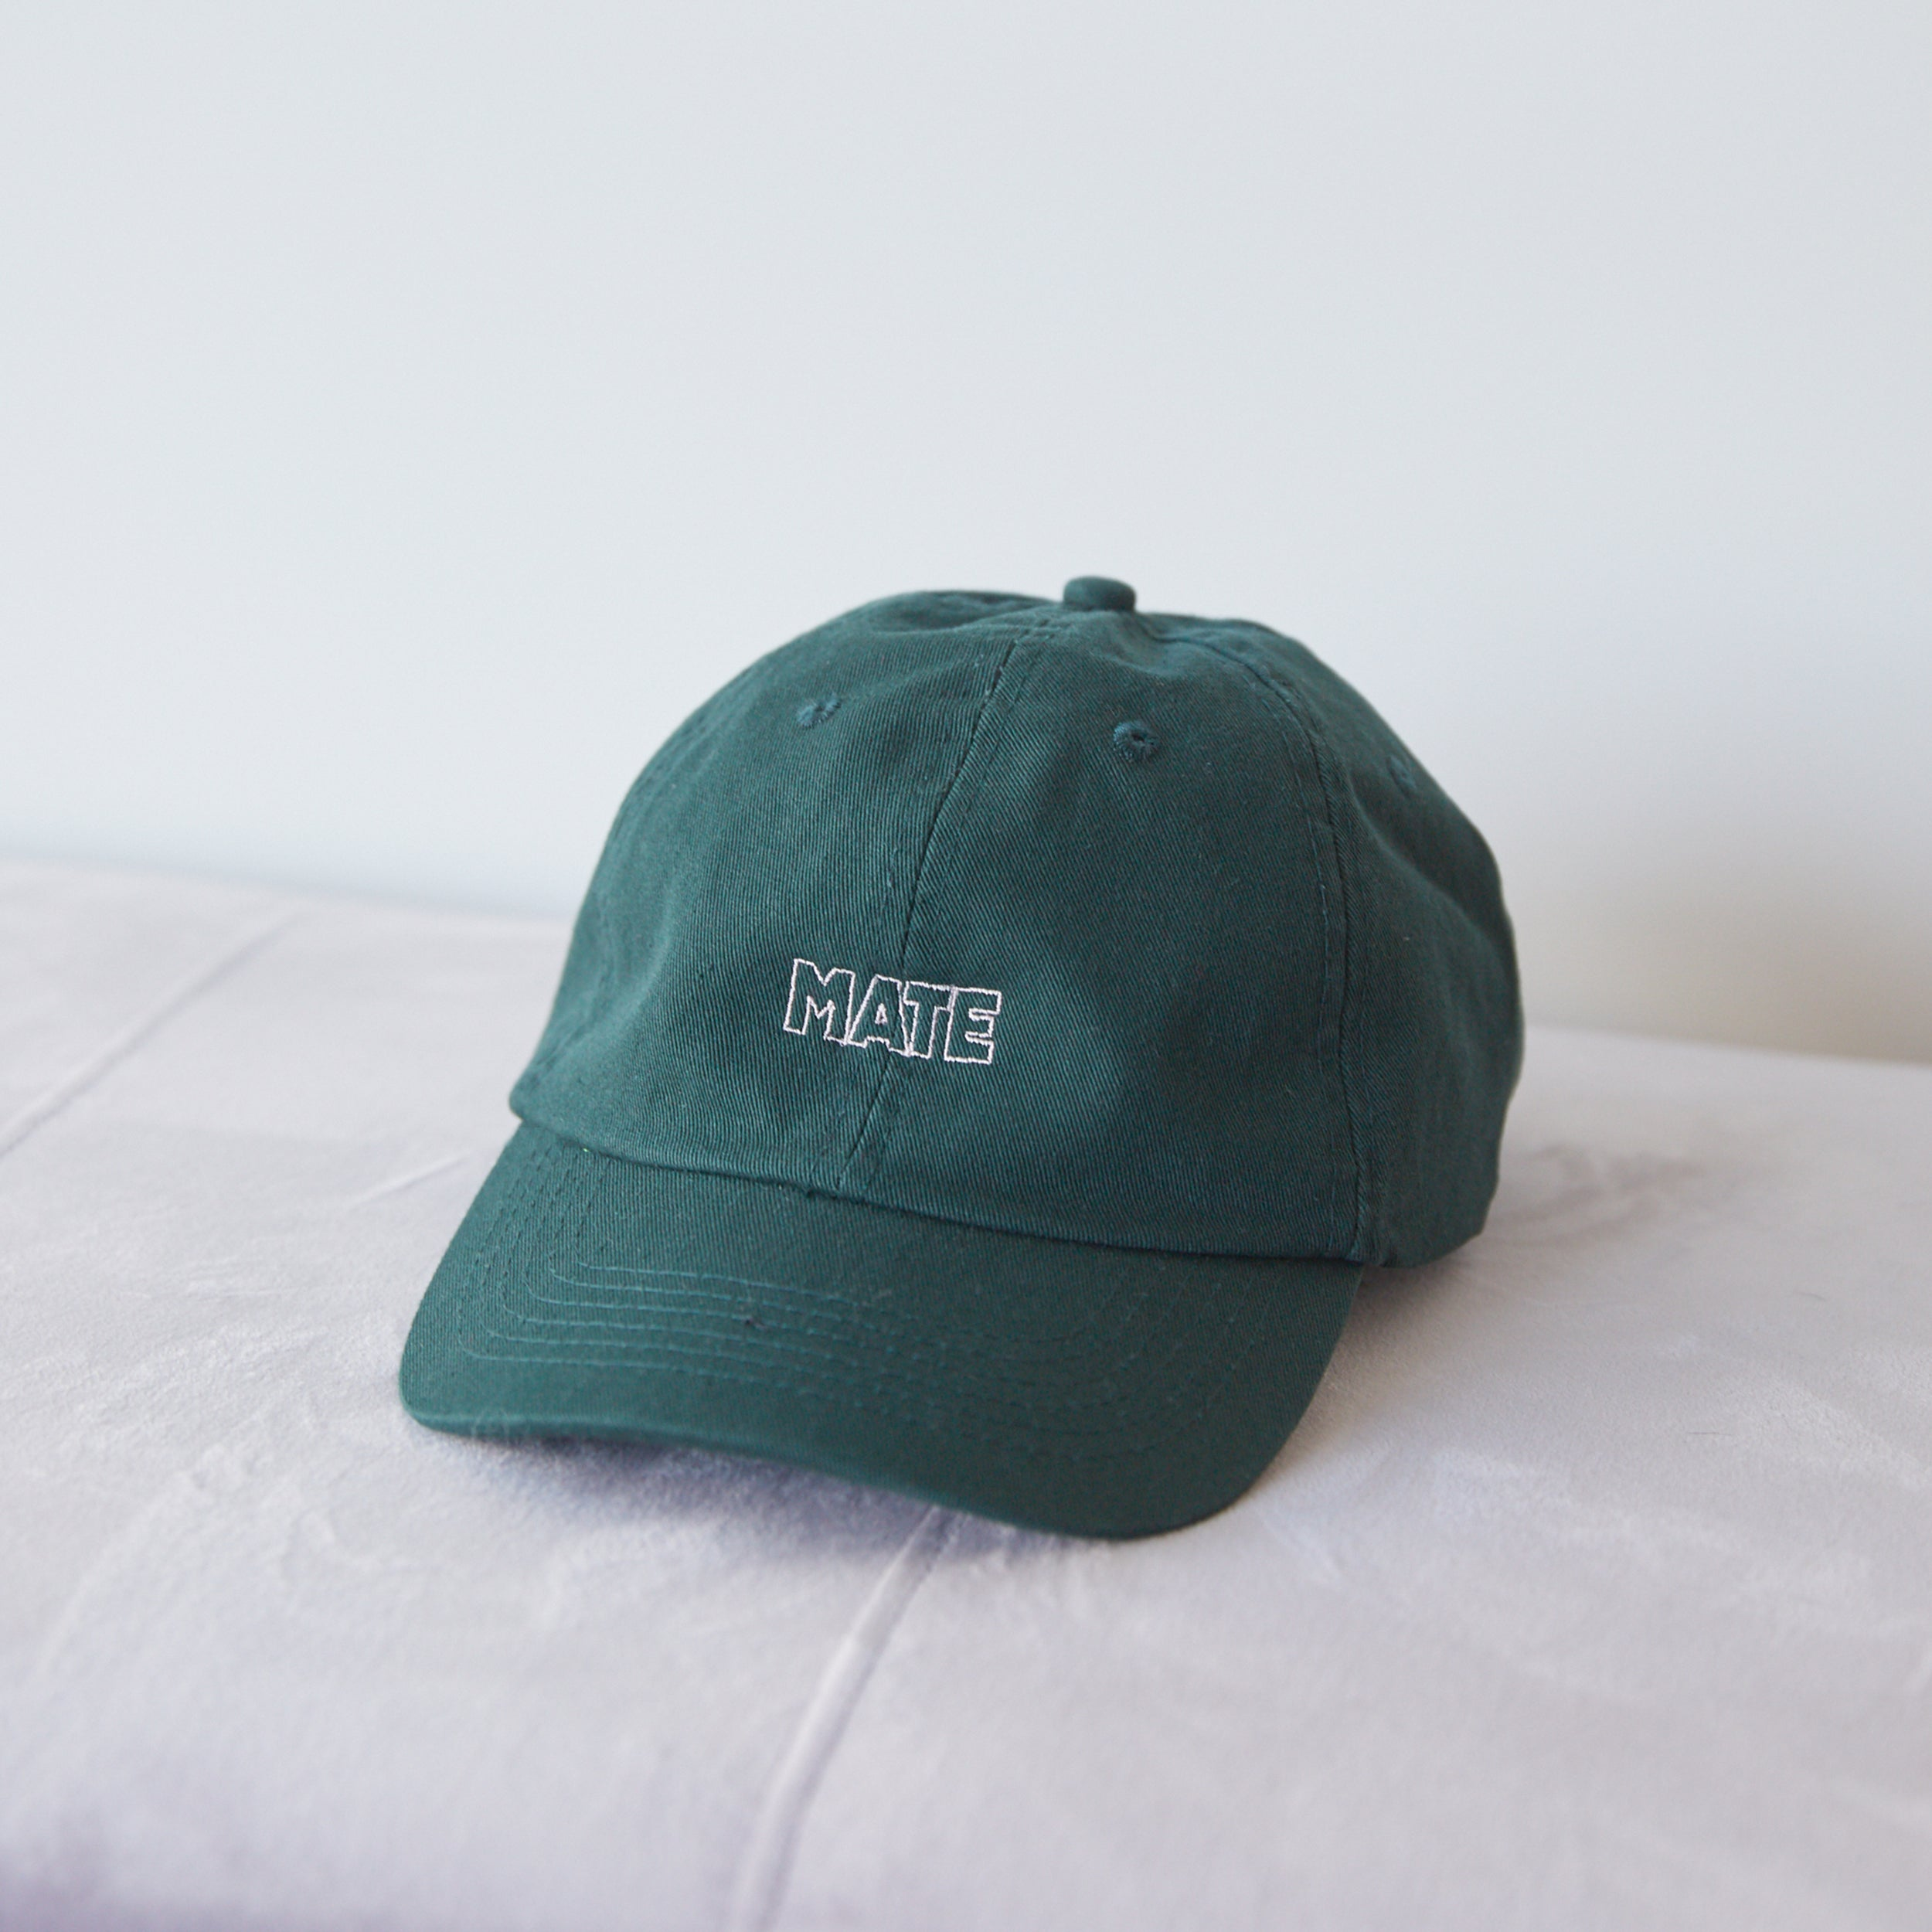 MATE WASHED TWILL HAT - FORREST GREEN/LIGHT PINK